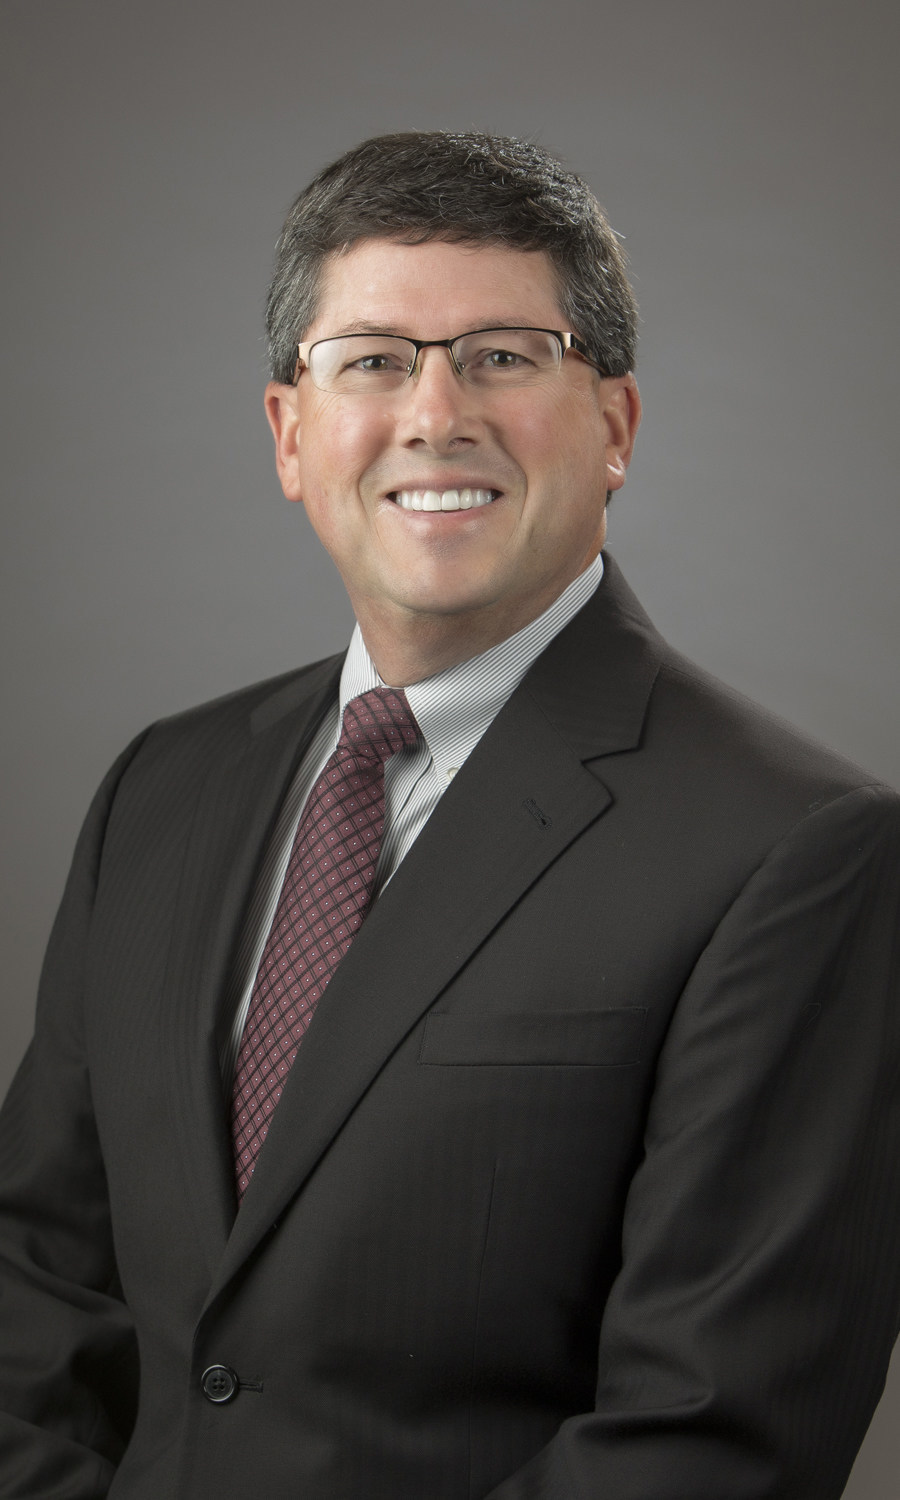 The Board of Directors of BayPort Credit Union is pleased to announce that James B. Mears has been named Chief Executive Officer.